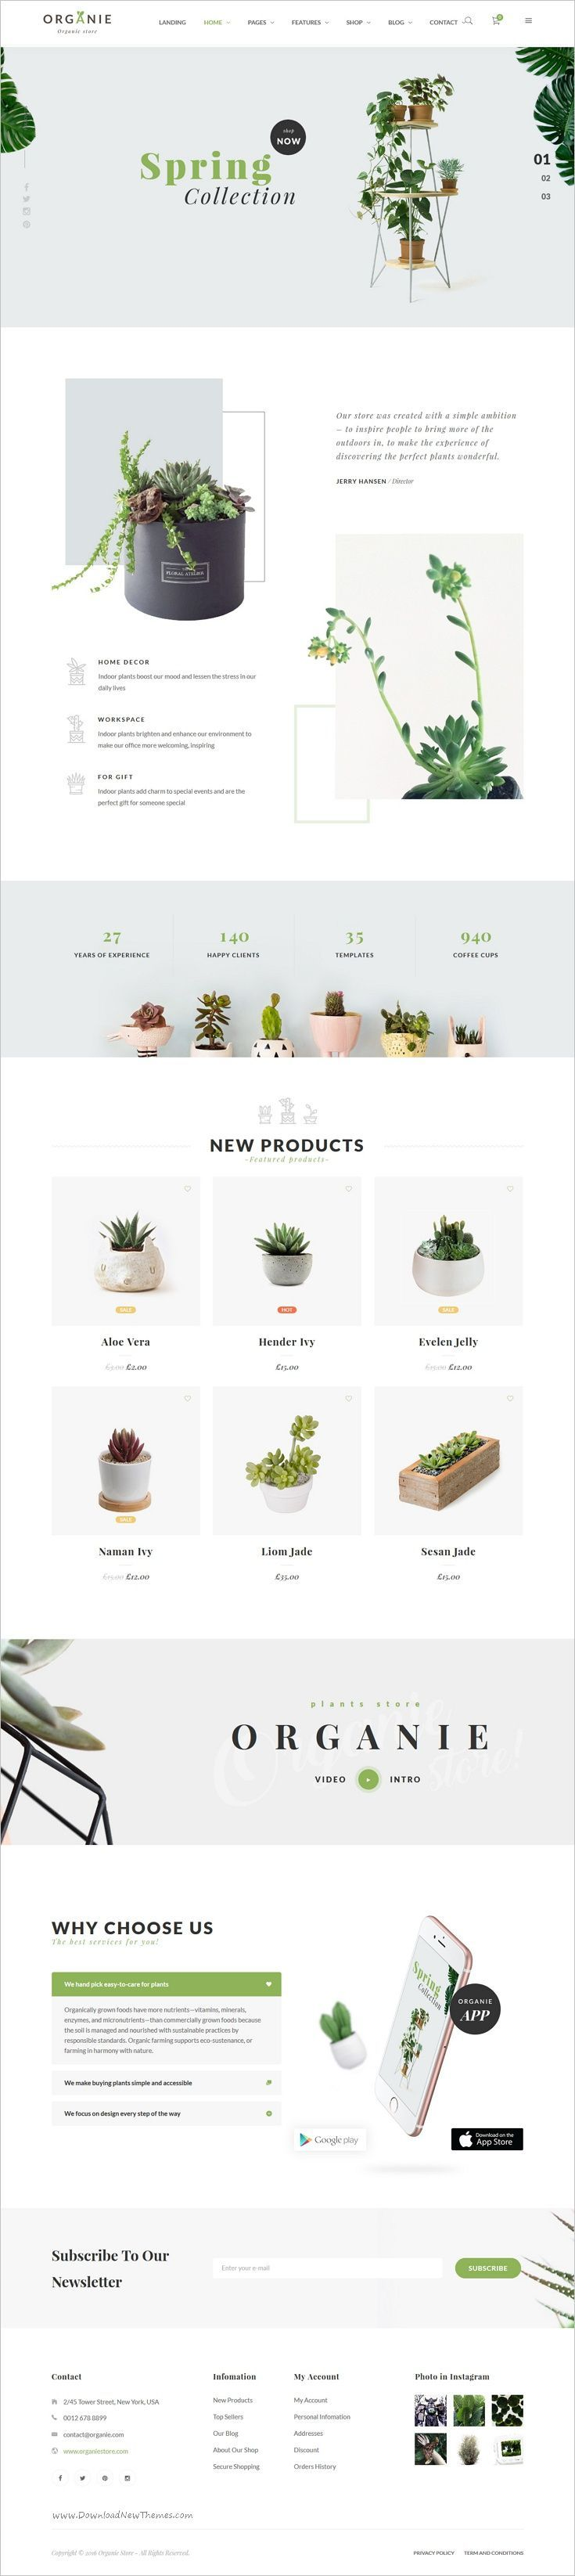 Best 25+ Ecommerce website design ideas on Pinterest | Web design ...